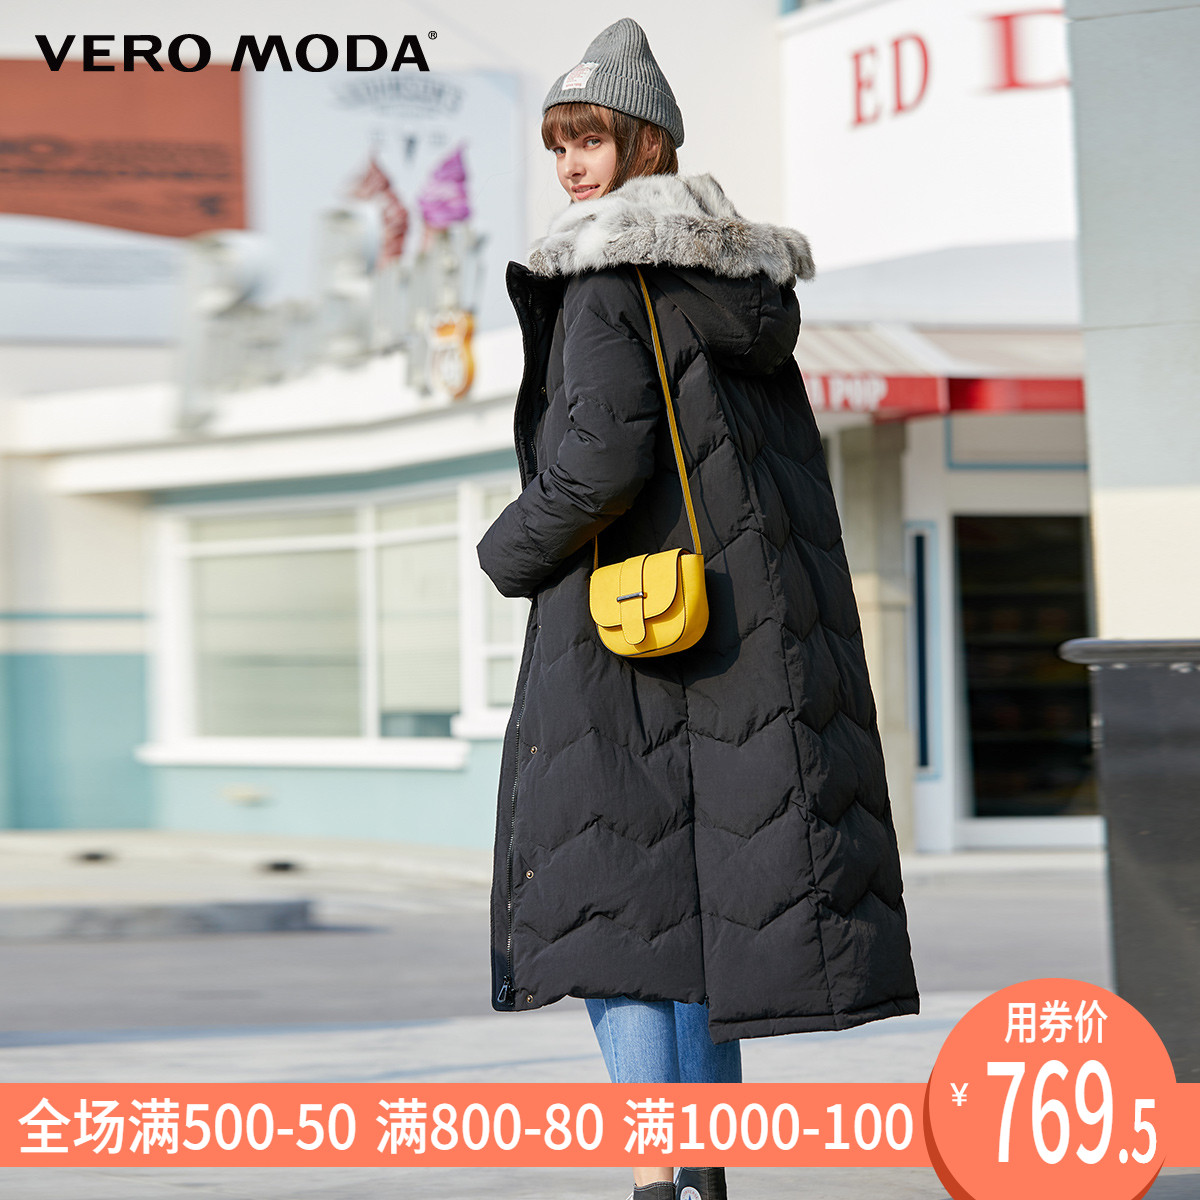 Vero moda2019 autumn and winter white duck down rabbit fur long down jacket for women 319312509